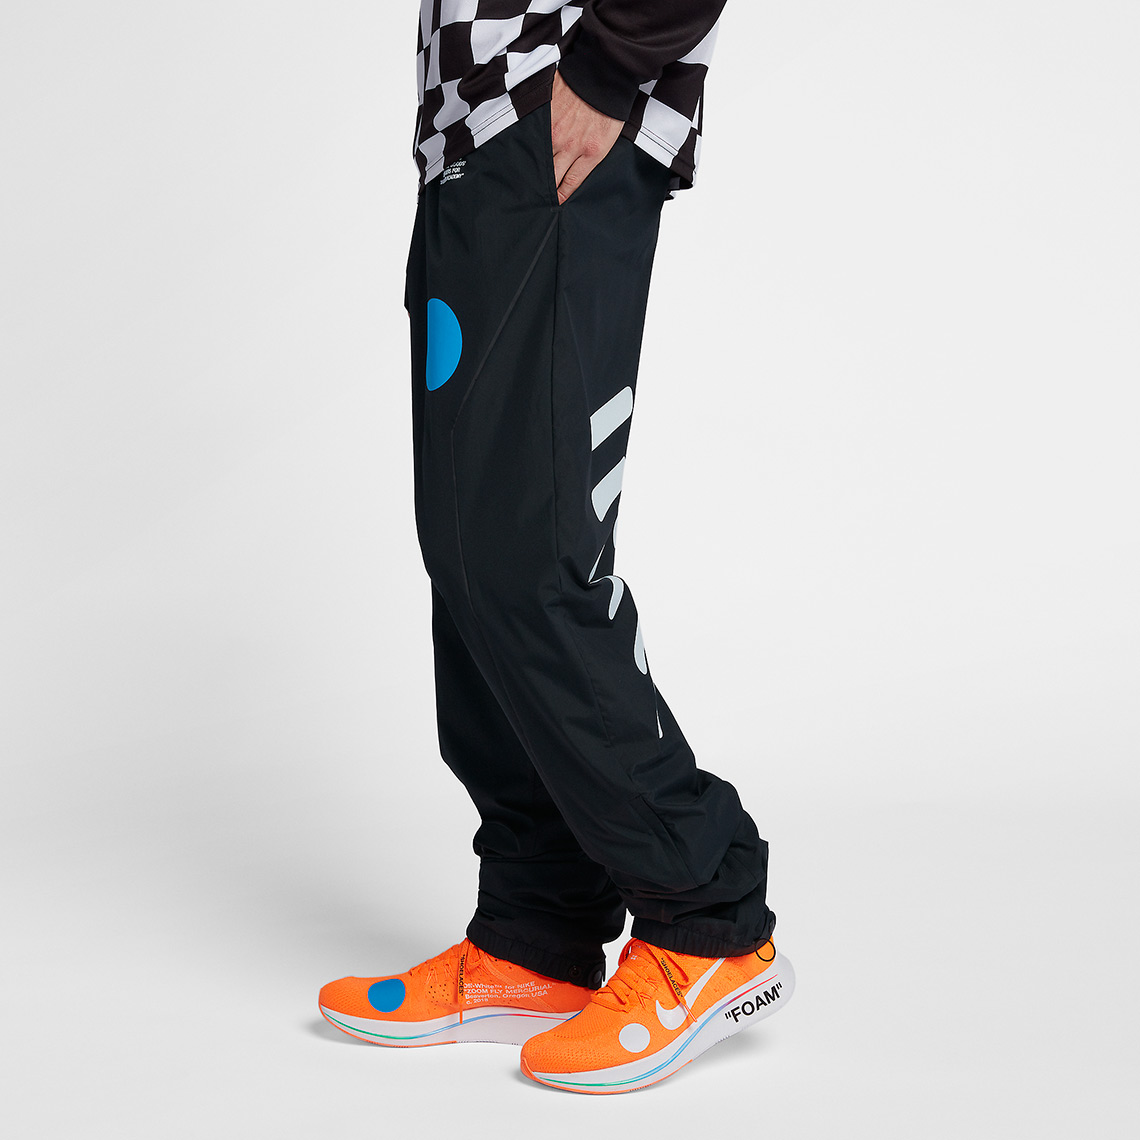 off-white-nike-soccer-pants-AA3299-010-6 - SneakersBR